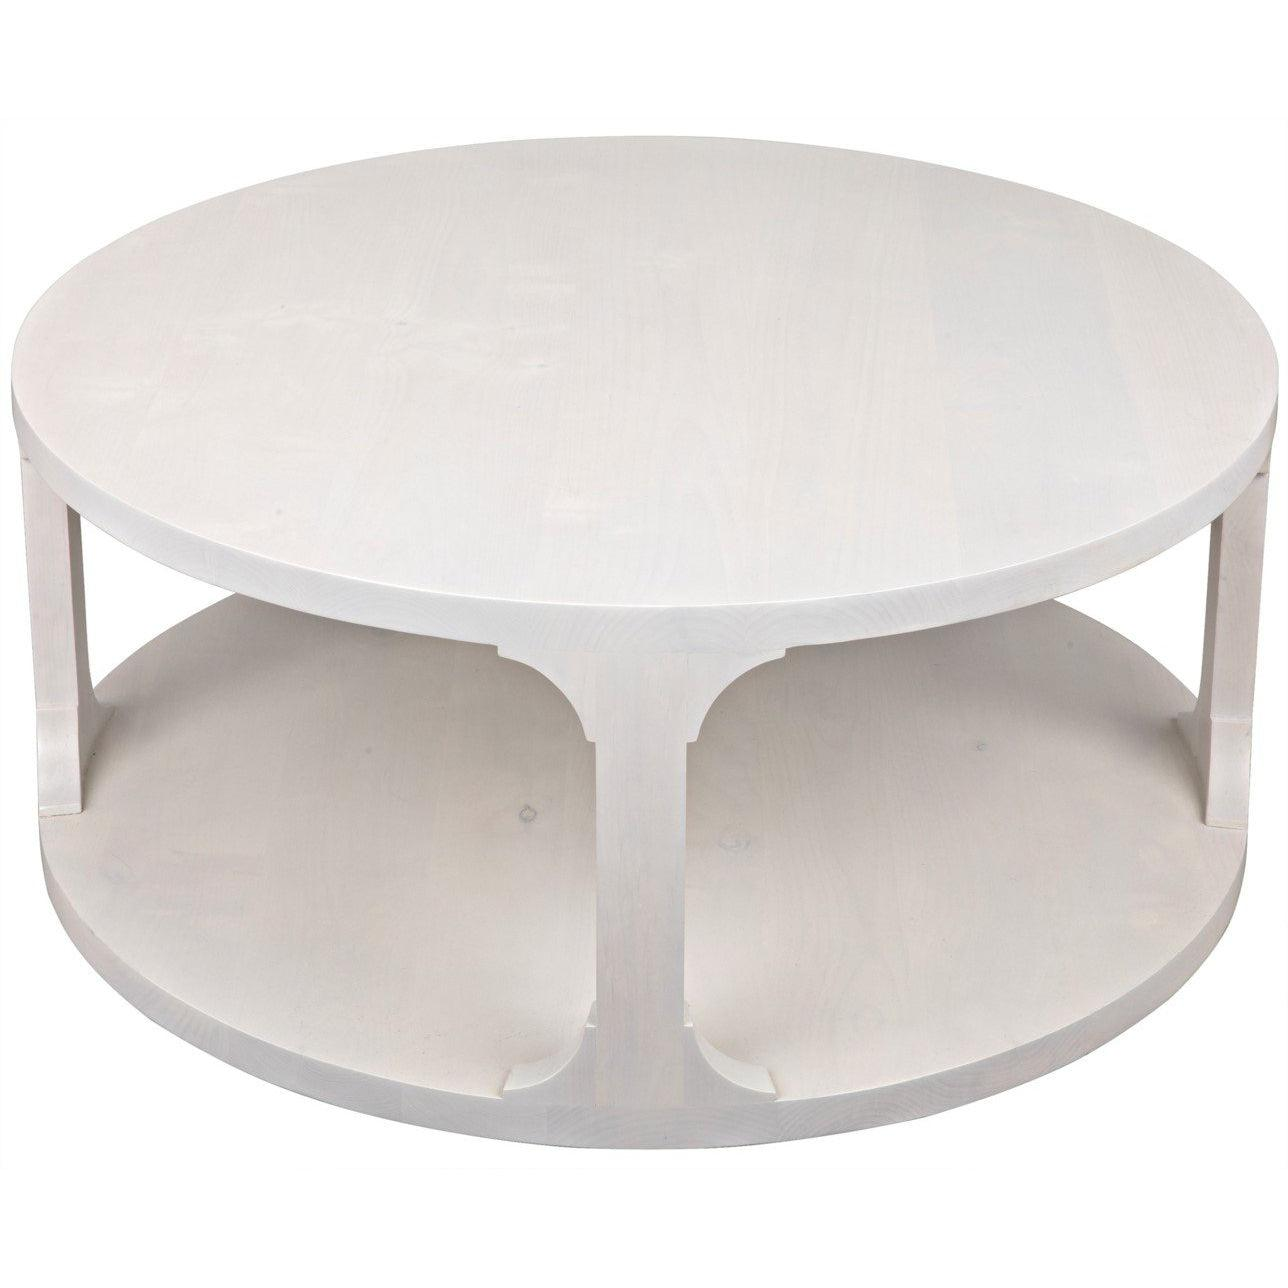 CFC Furniture Gimso Round Small Coffee Table, Alder